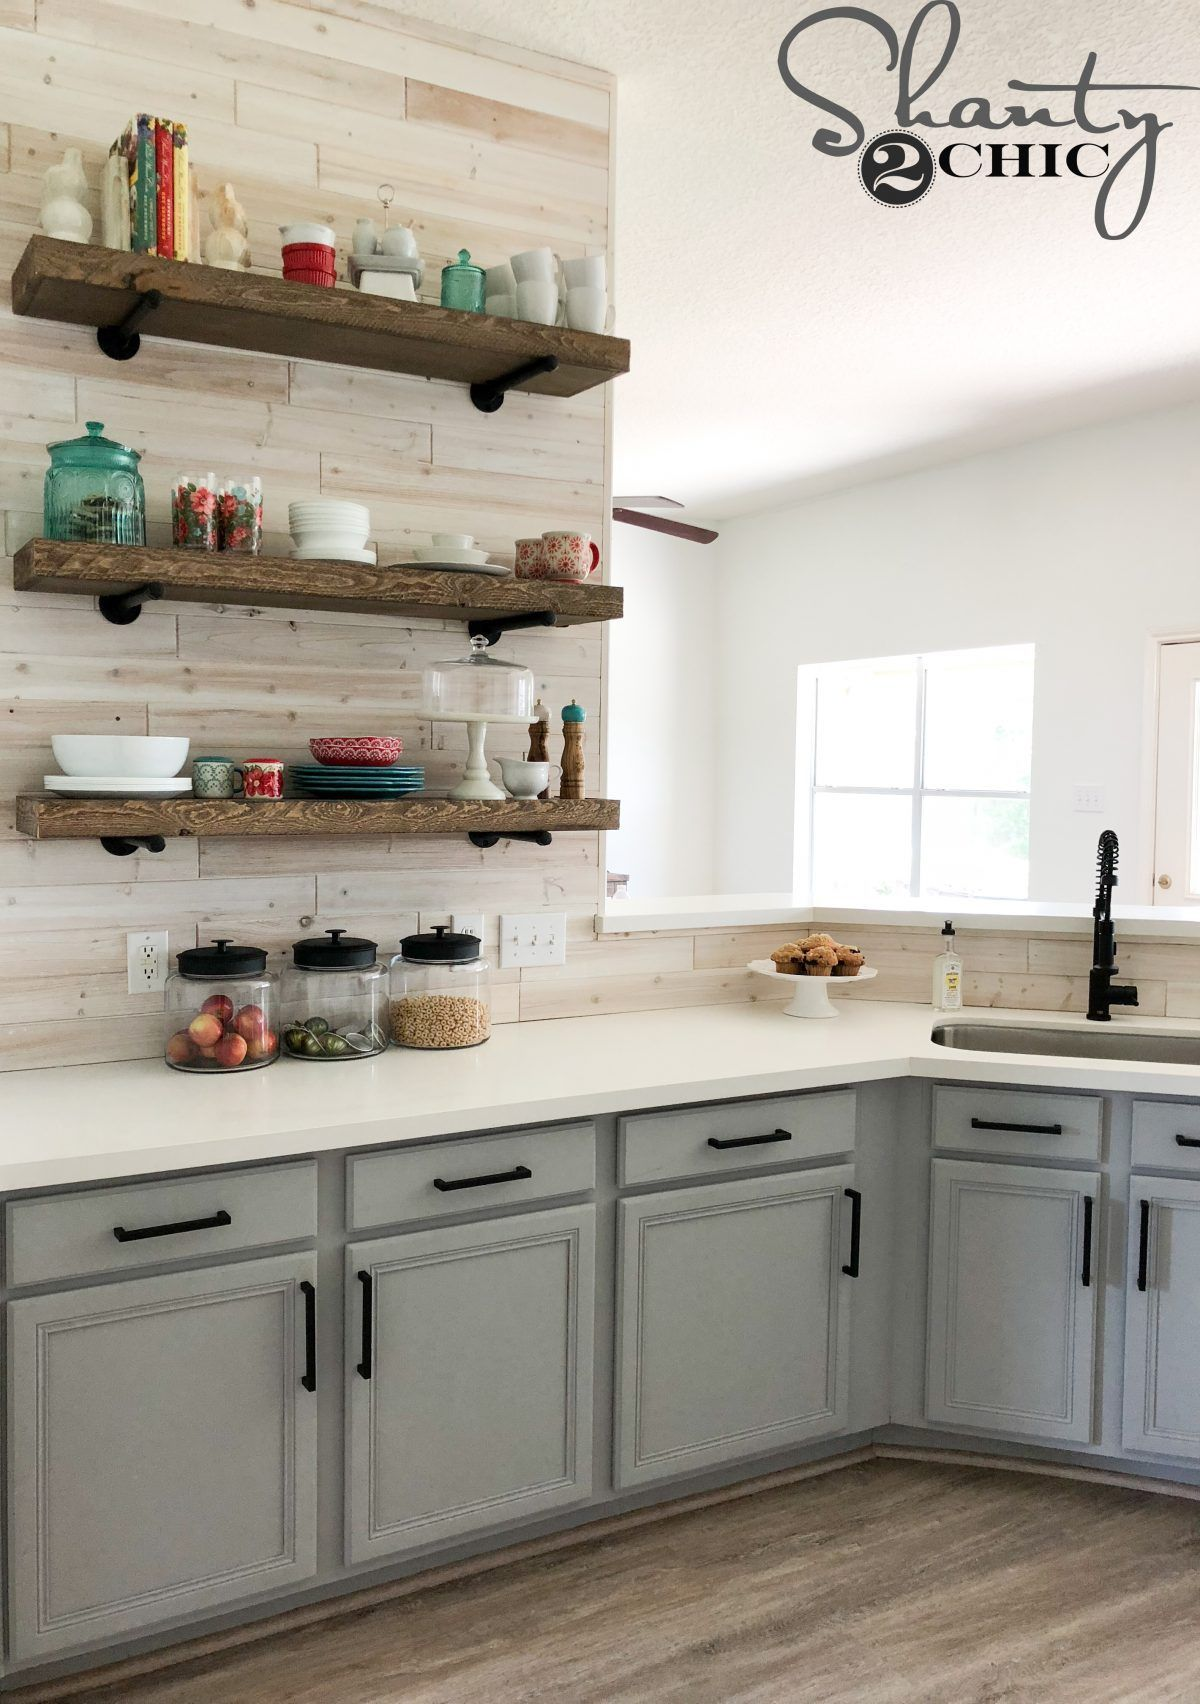 Update Your Builder Grade Kitchen With This Affordable Diy Driftwood Backsplash Free Pla New Kitchen Cabinets Refacing Kitchen Cabinets Diy Kitchen Renovation